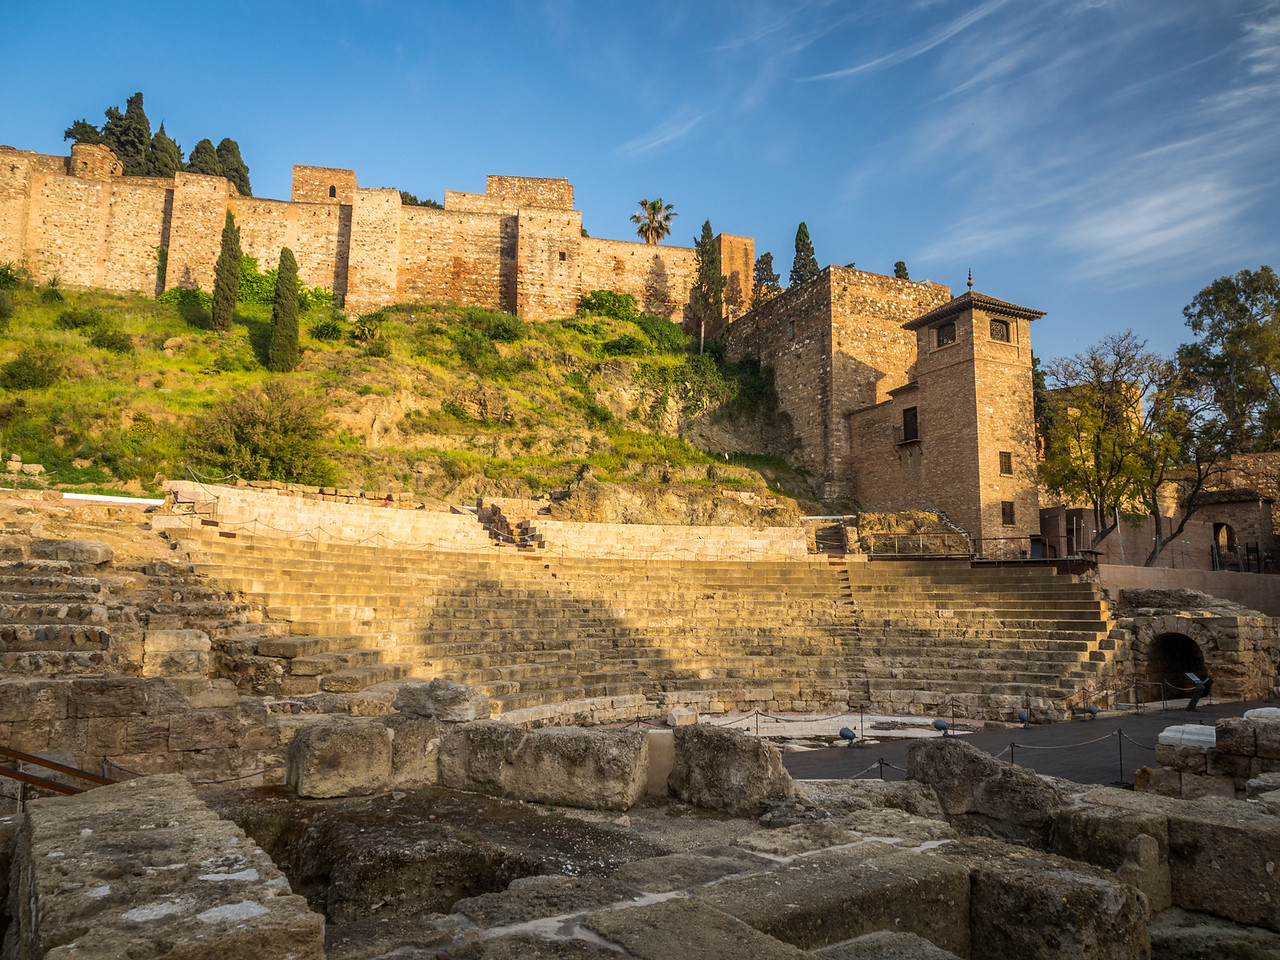 Evening on the Roman Ruins and Alcazaba, Málaga